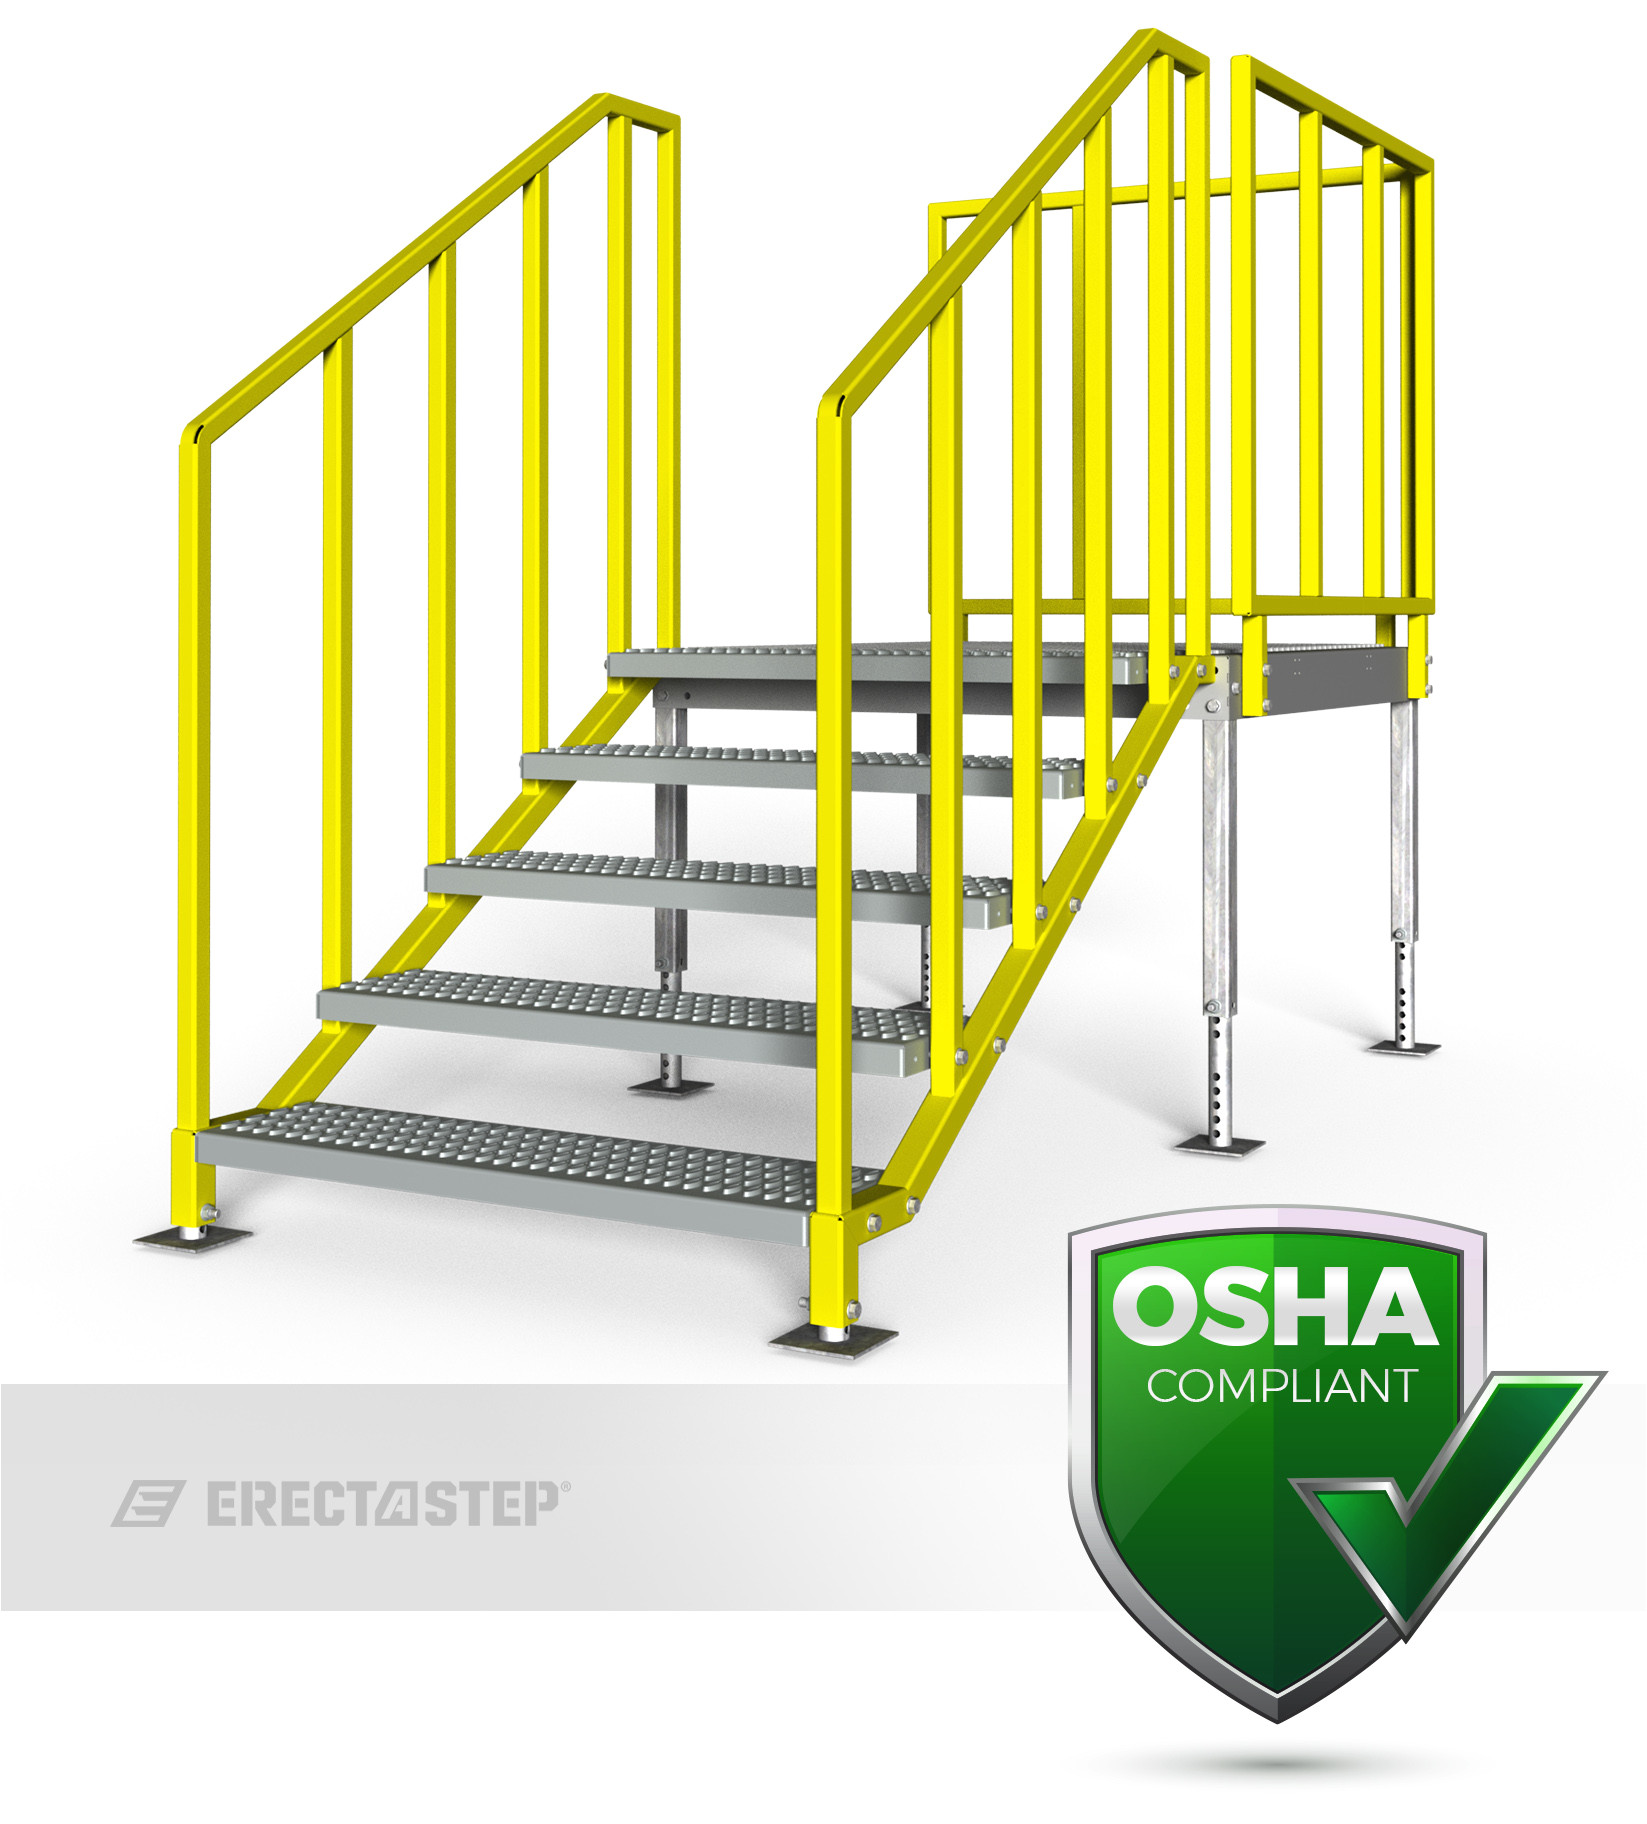 erectastep portable metal stairs provide a fast easy solution for temporary or portable metal stair needs available in 7 sizes from 28 63 711mm